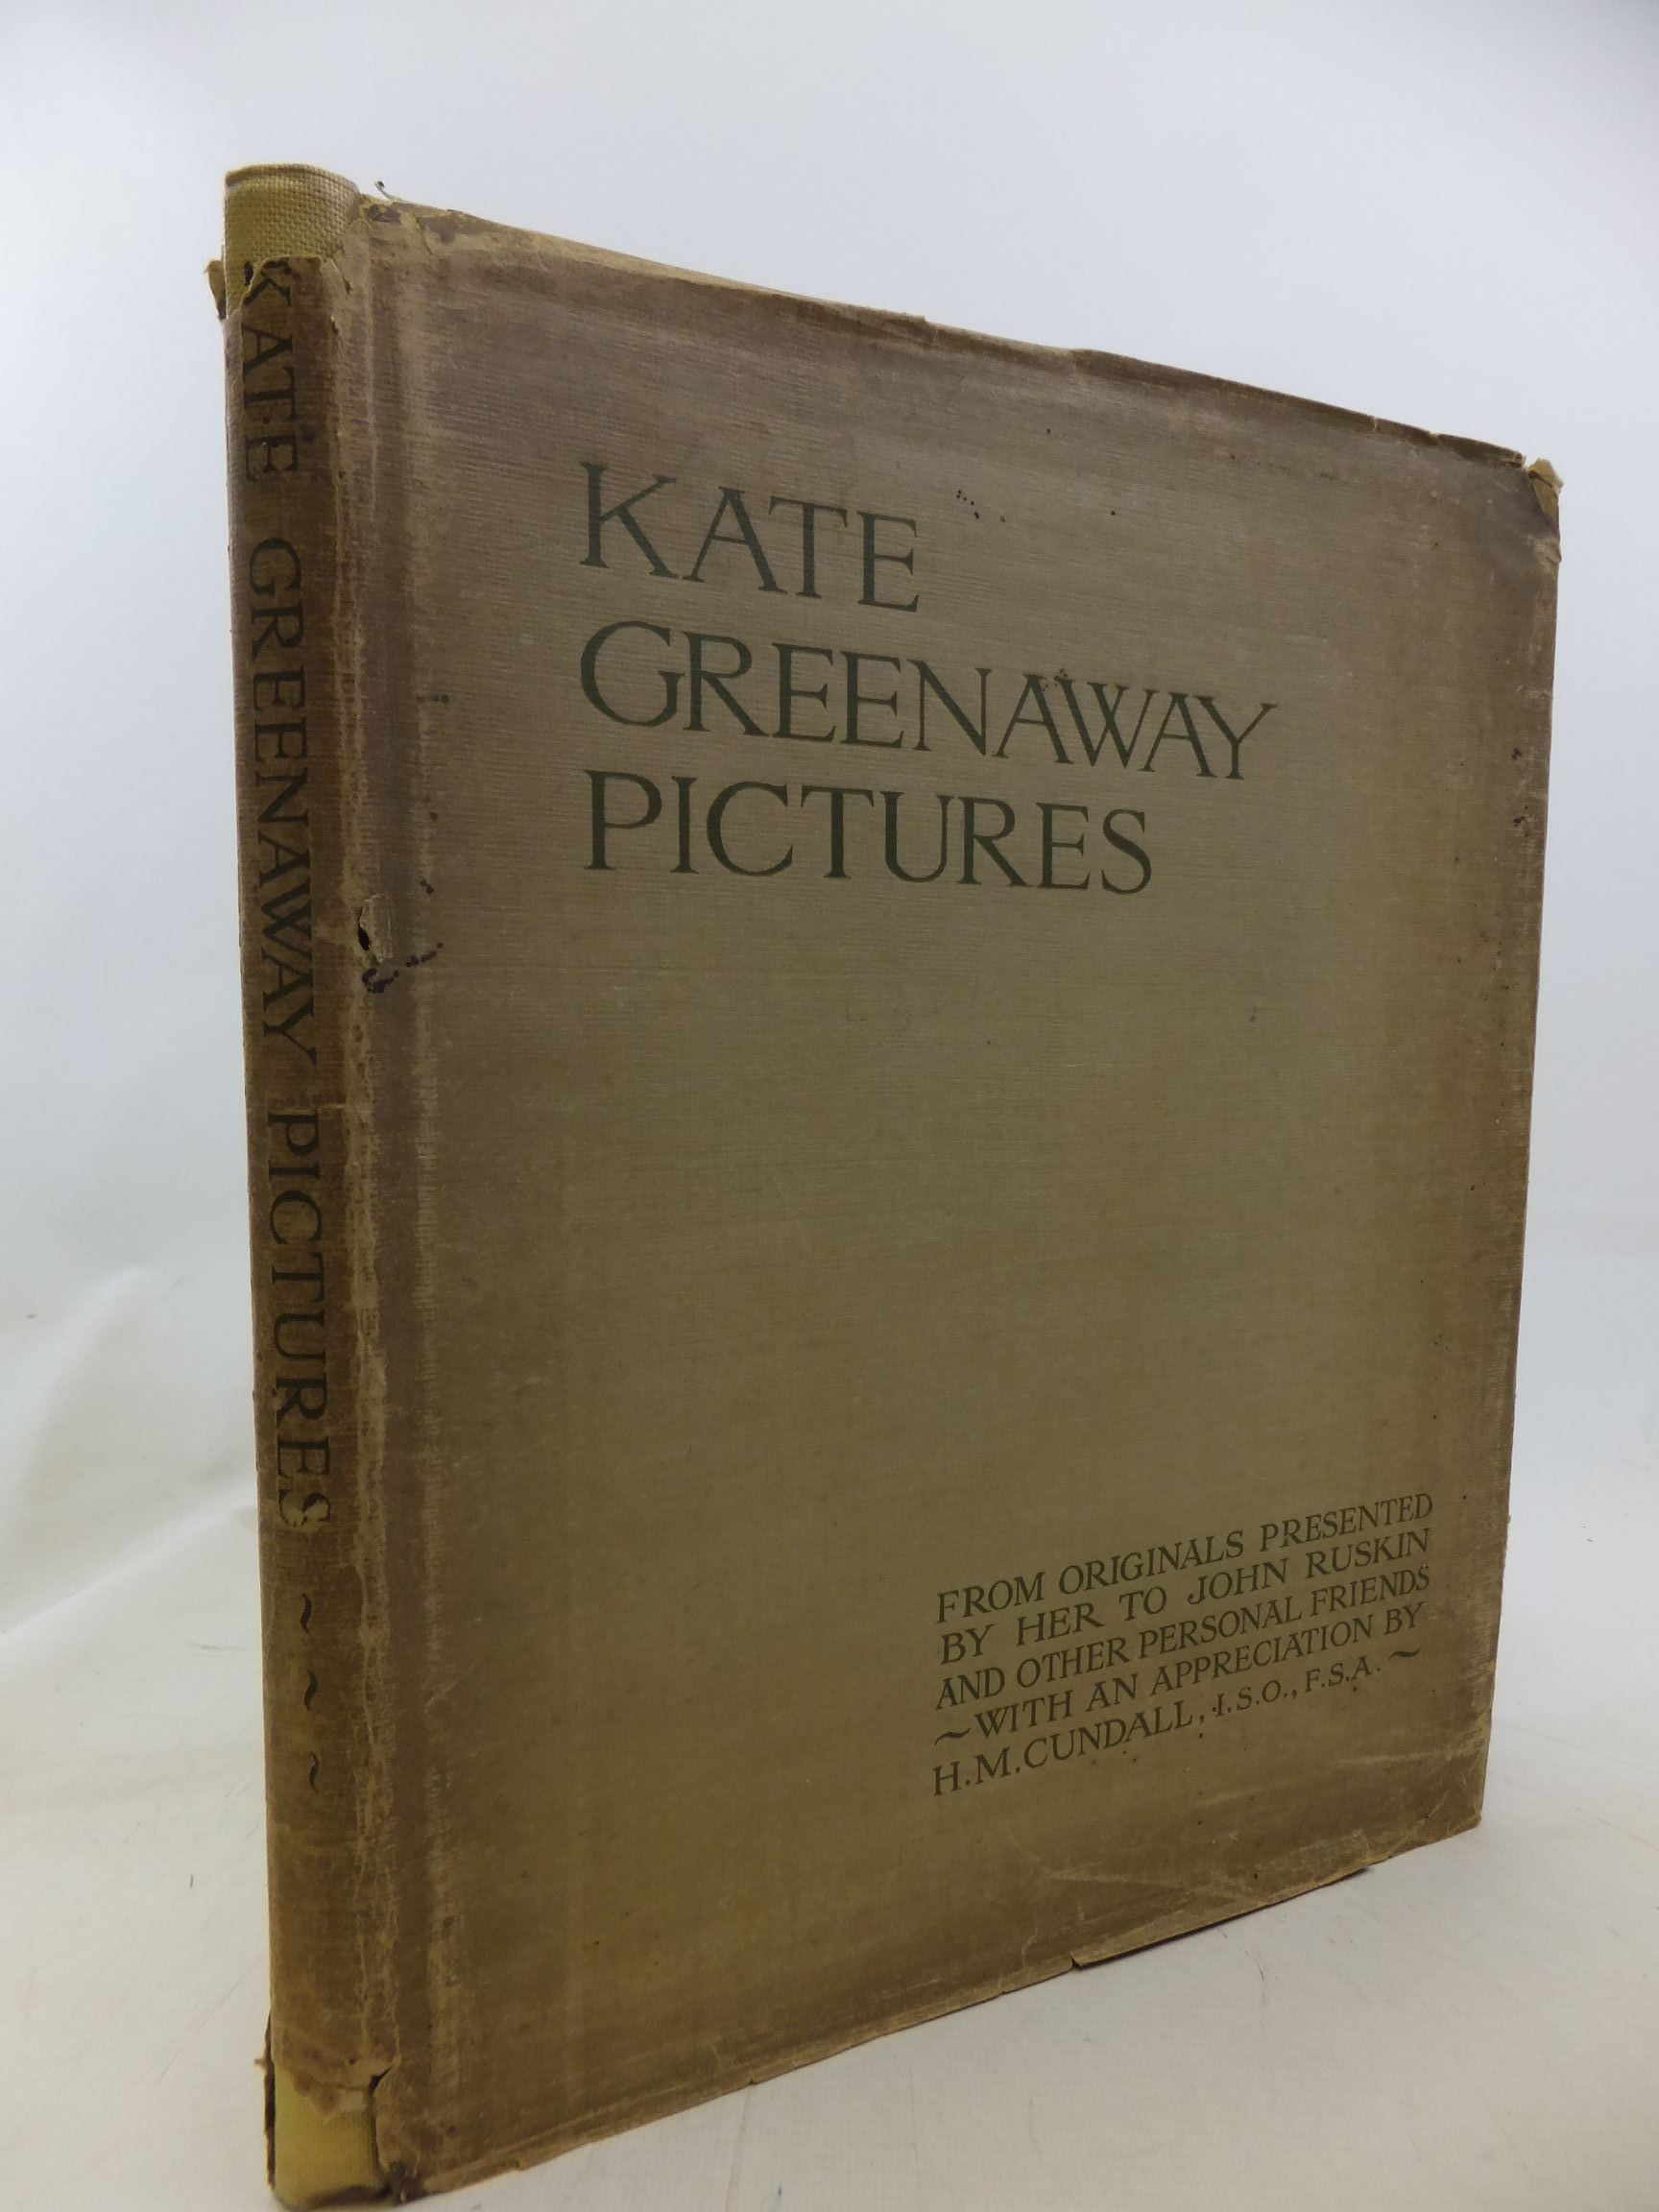 Photo of KATE GREENAWAY PICTURES written by Cundall, H.M. illustrated by Greenaway, Kate published by Frederick Warne & Co Ltd. (STOCK CODE: 1711740)  for sale by Stella & Rose's Books